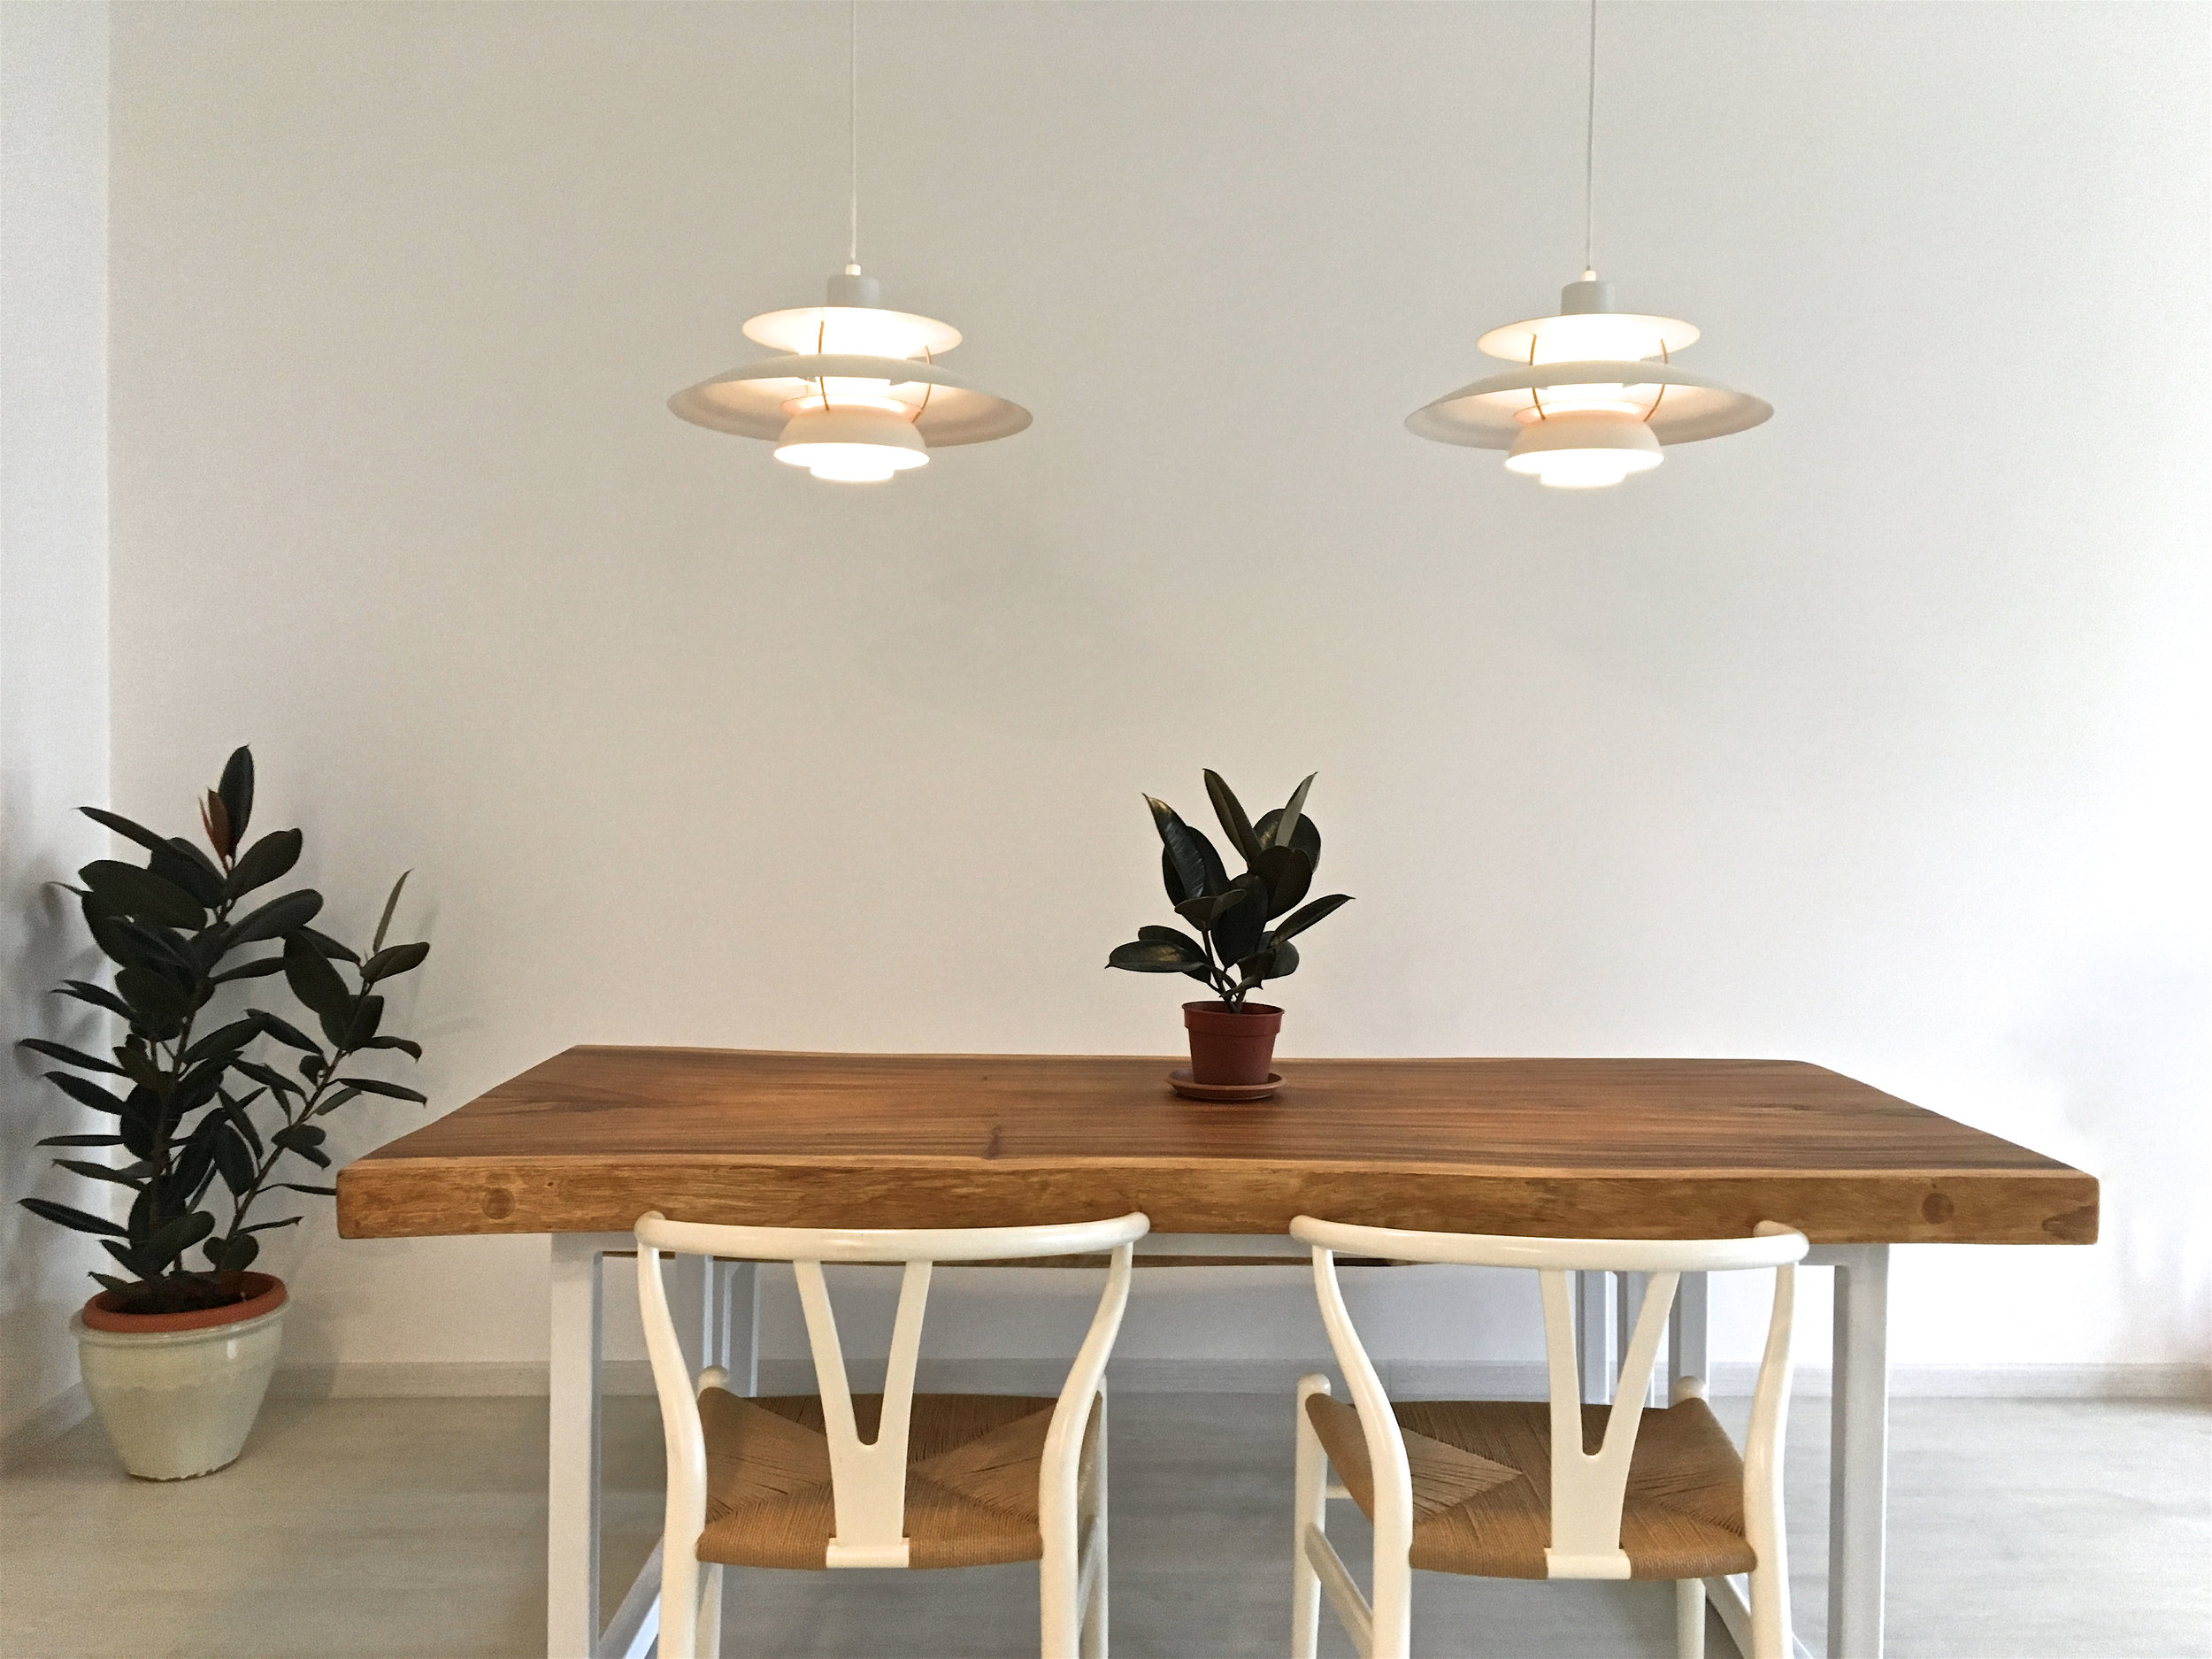 Suar Wood Table with Custom Base // Herman Furniture Singapore